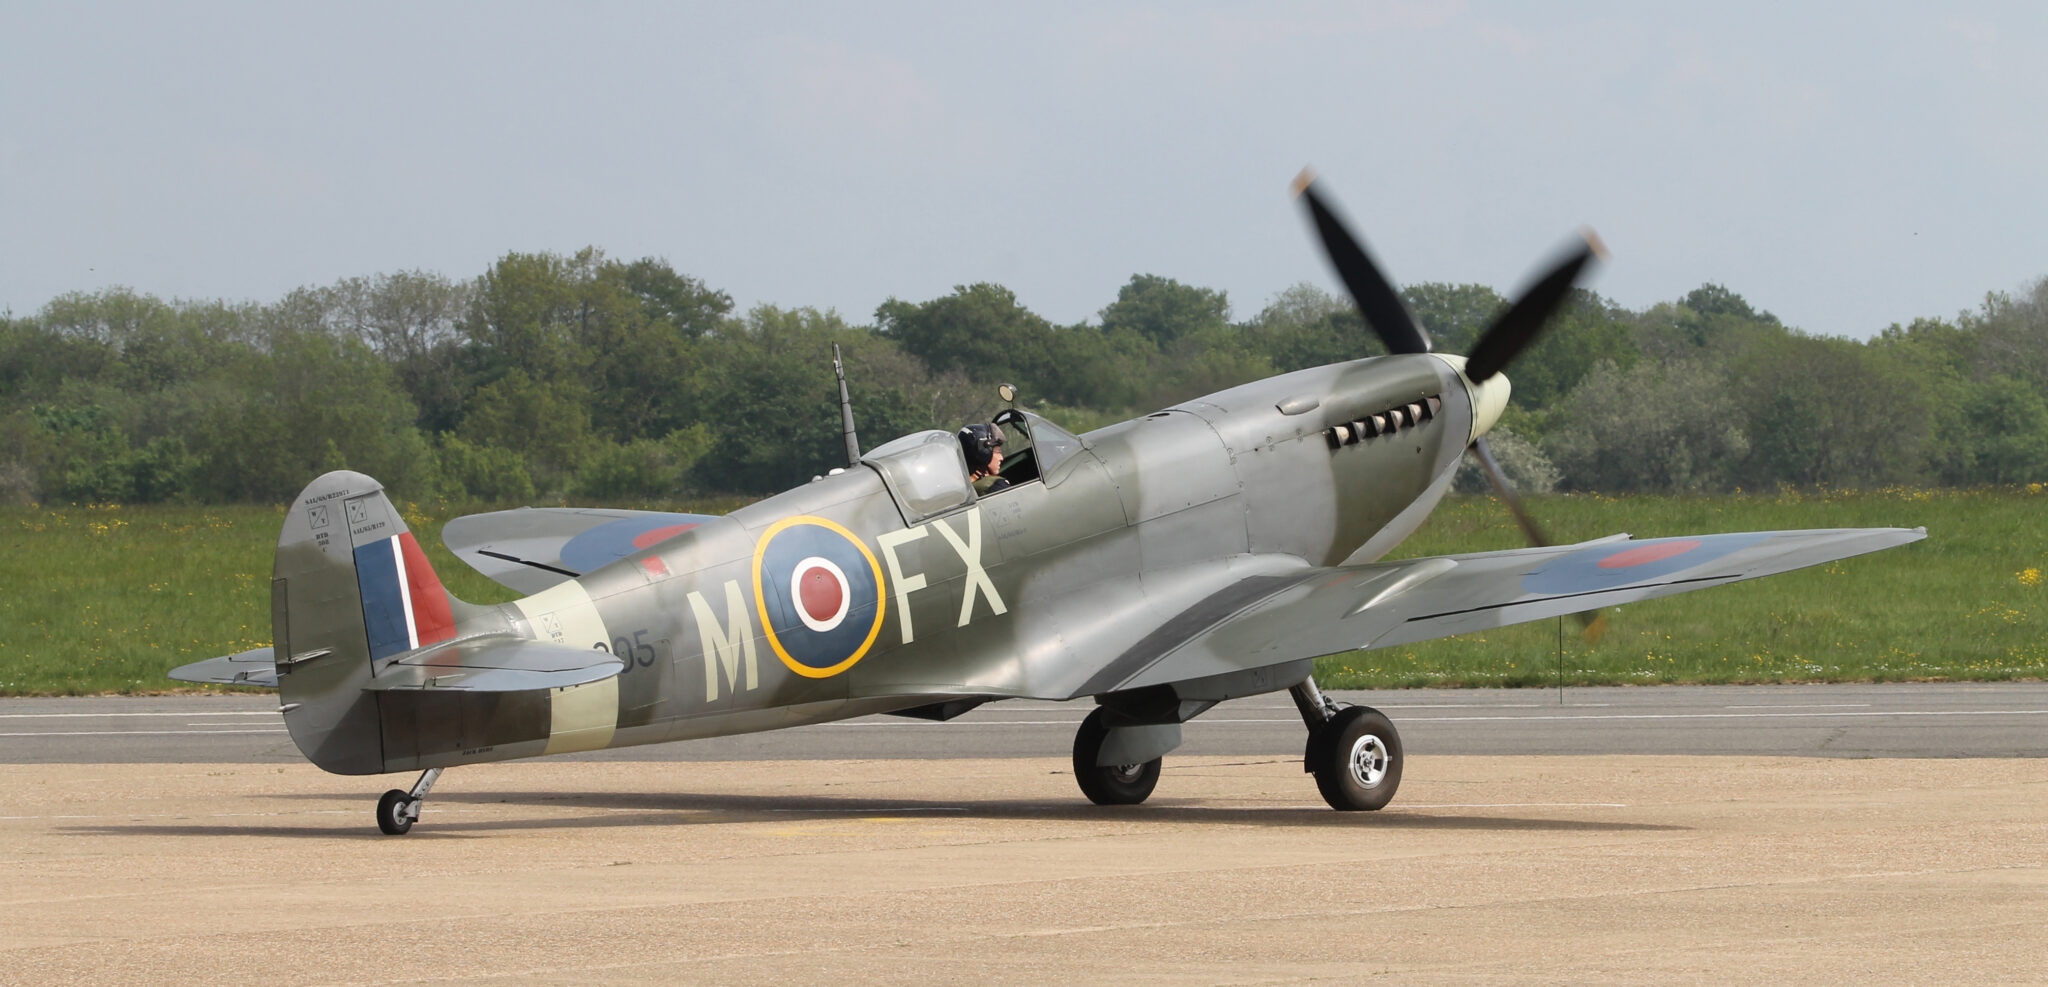 Biggin Hill-based Spitfire Mk IX TA805 taxies in after its impressive Armchair Airshow campaign.